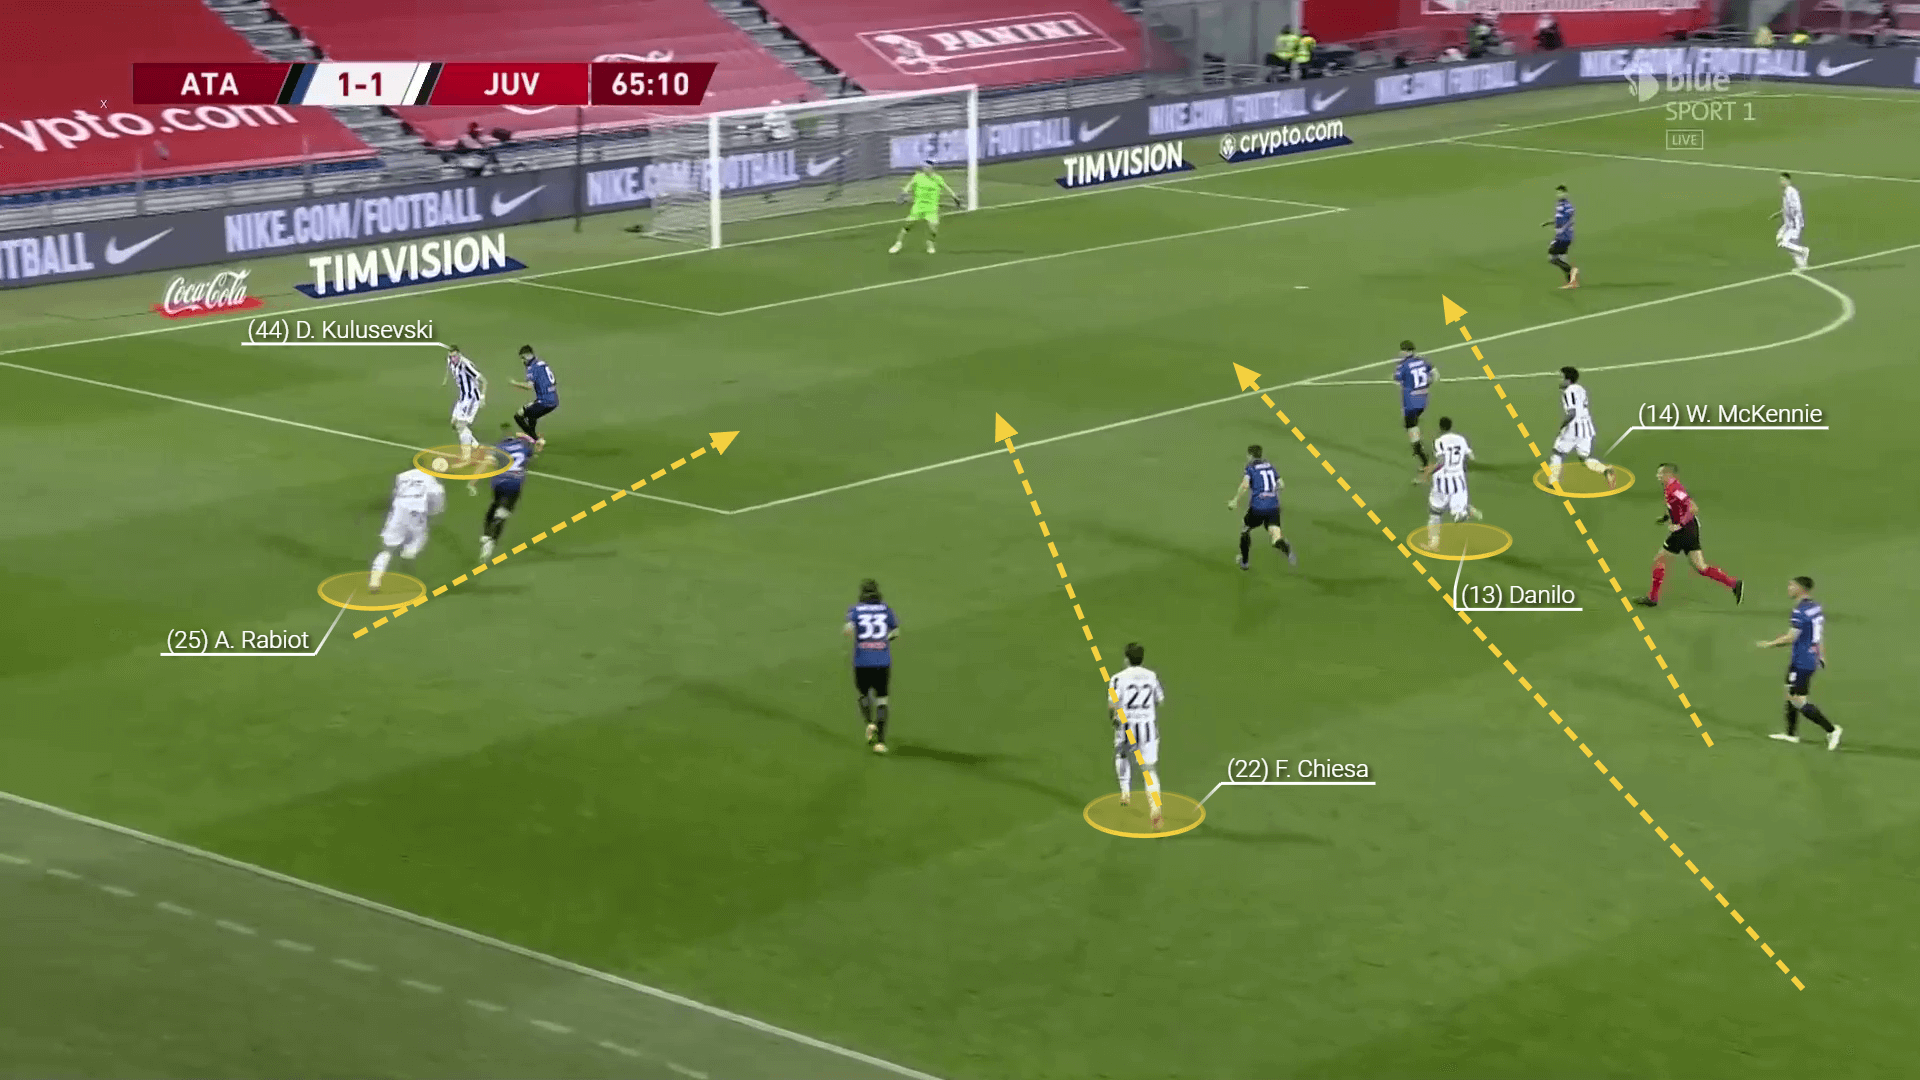 Coppa Italia Final 2020/21: Mentality switch or flexibility - what led Juventus to triumph against Atalanta? - tactical analysis tactics